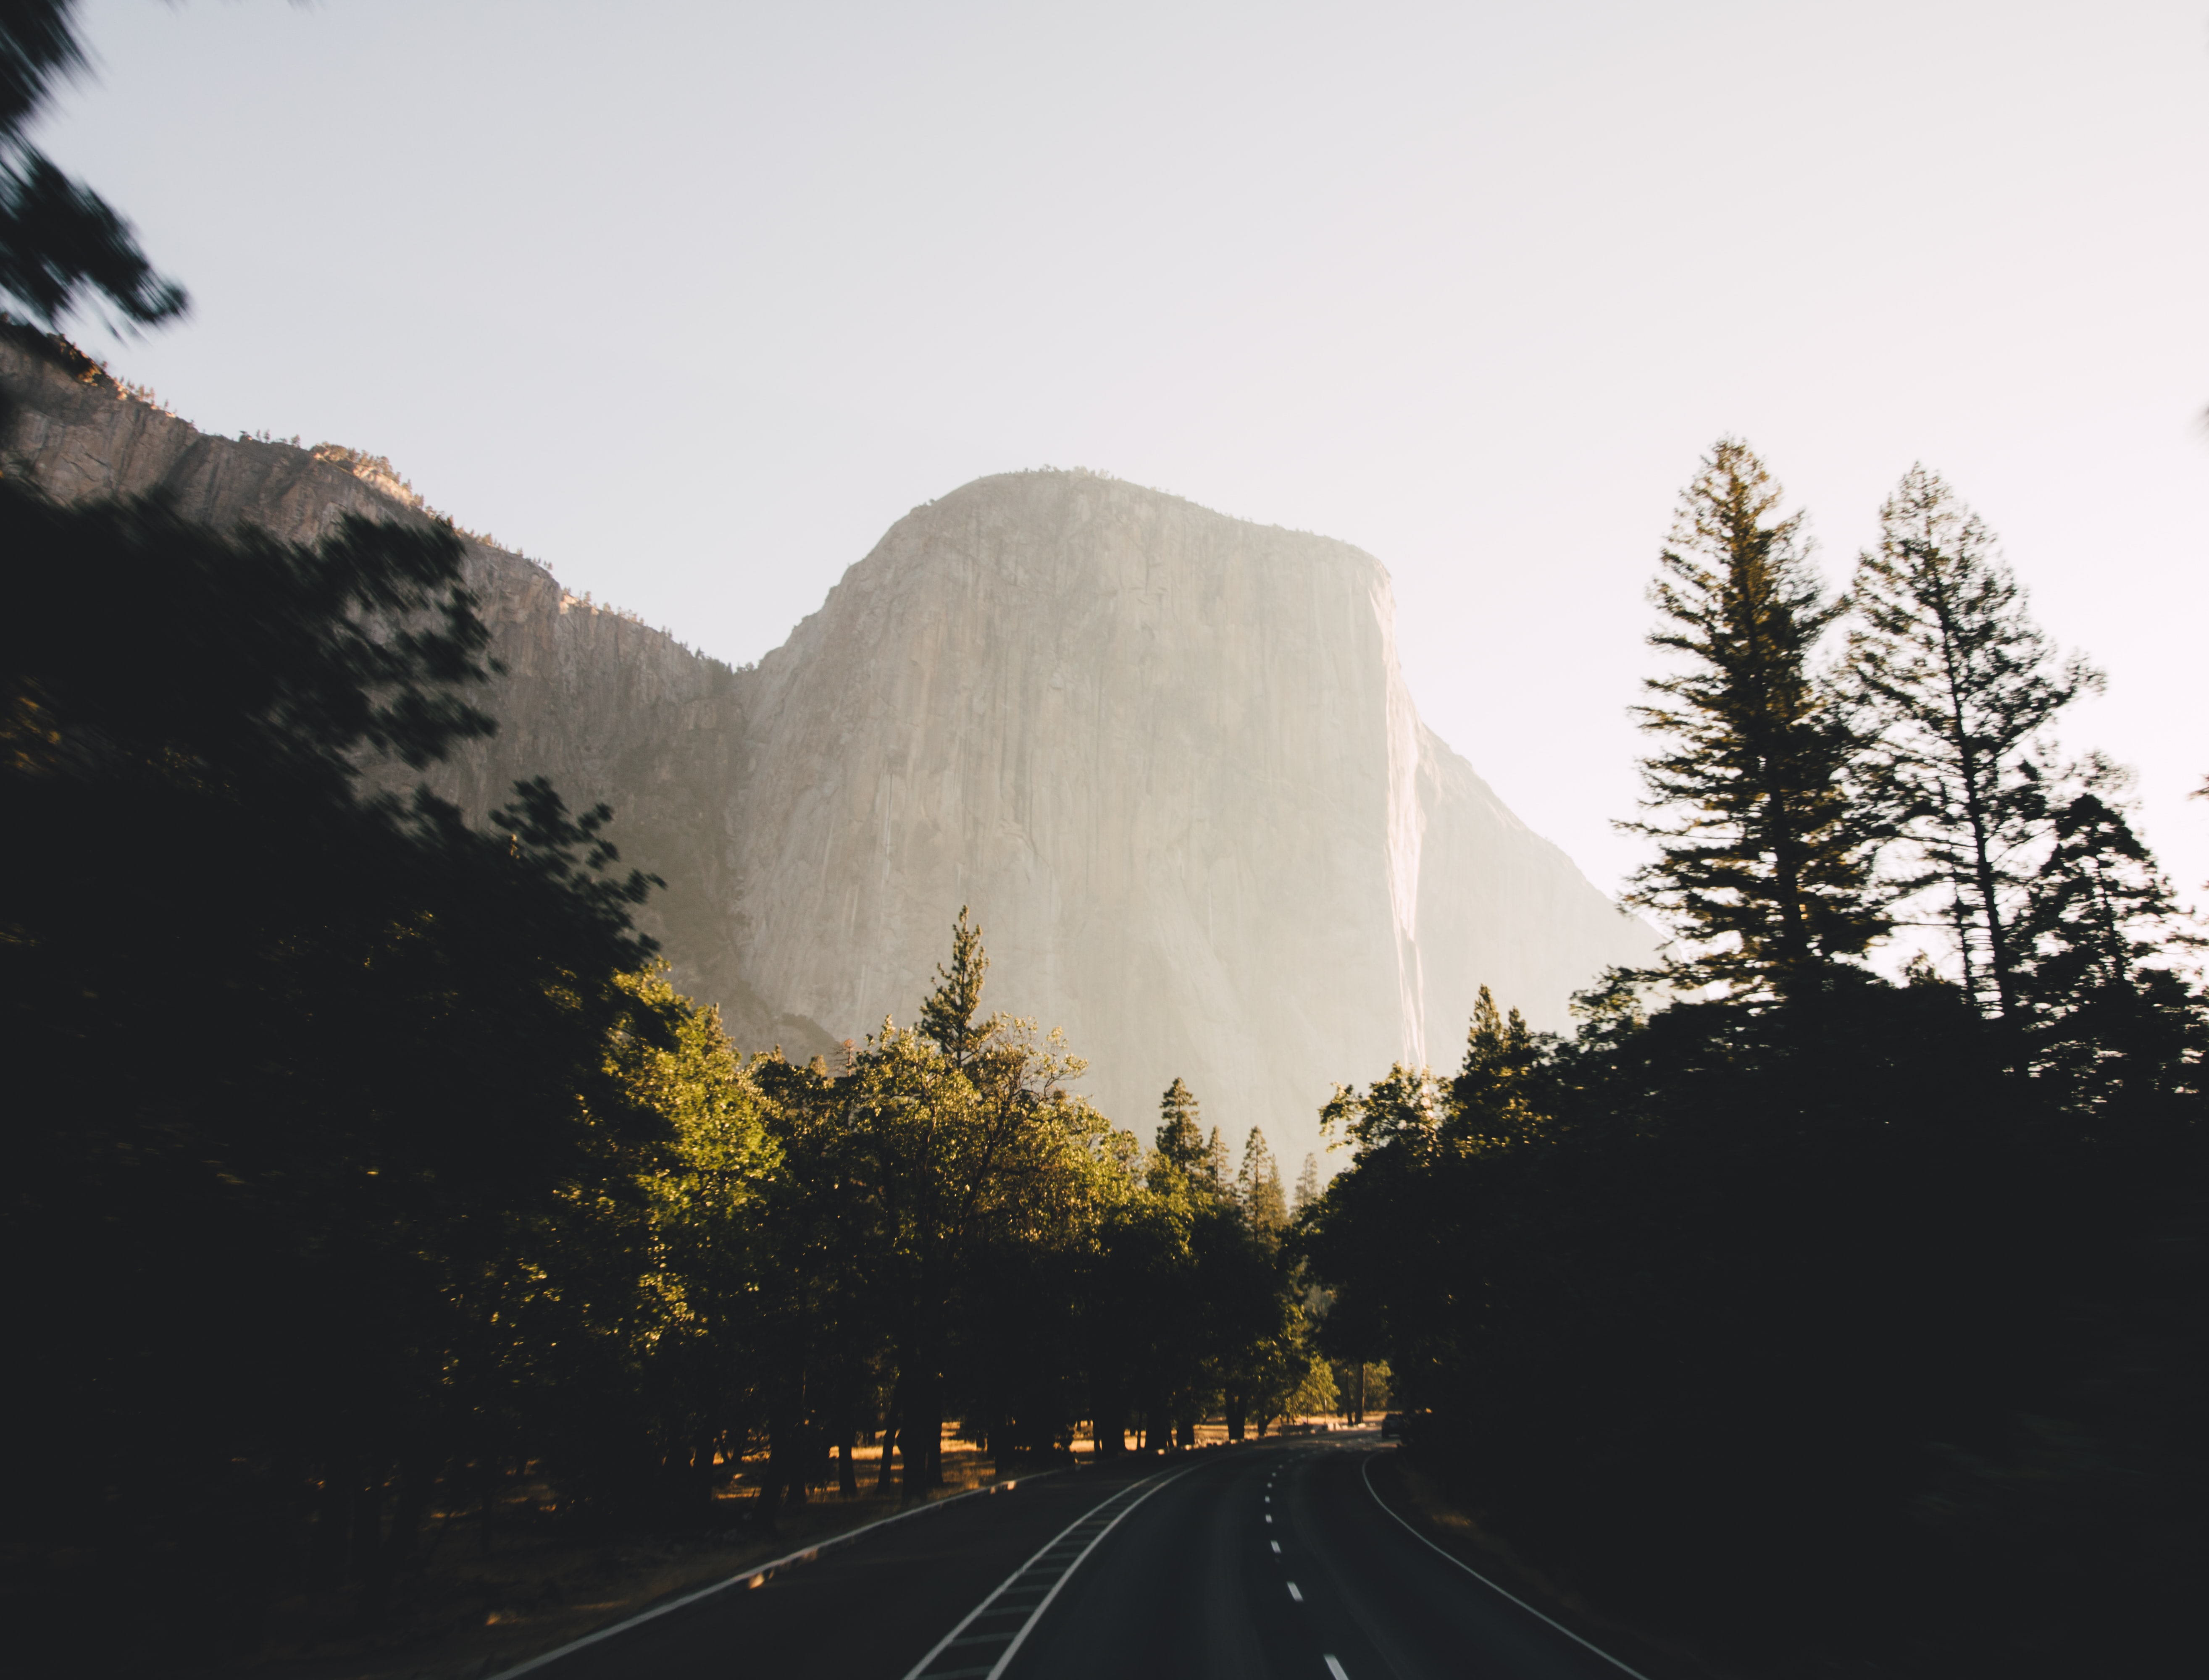 A curve in a tree-lined road near a vertical granite summit in Yosemite Valley